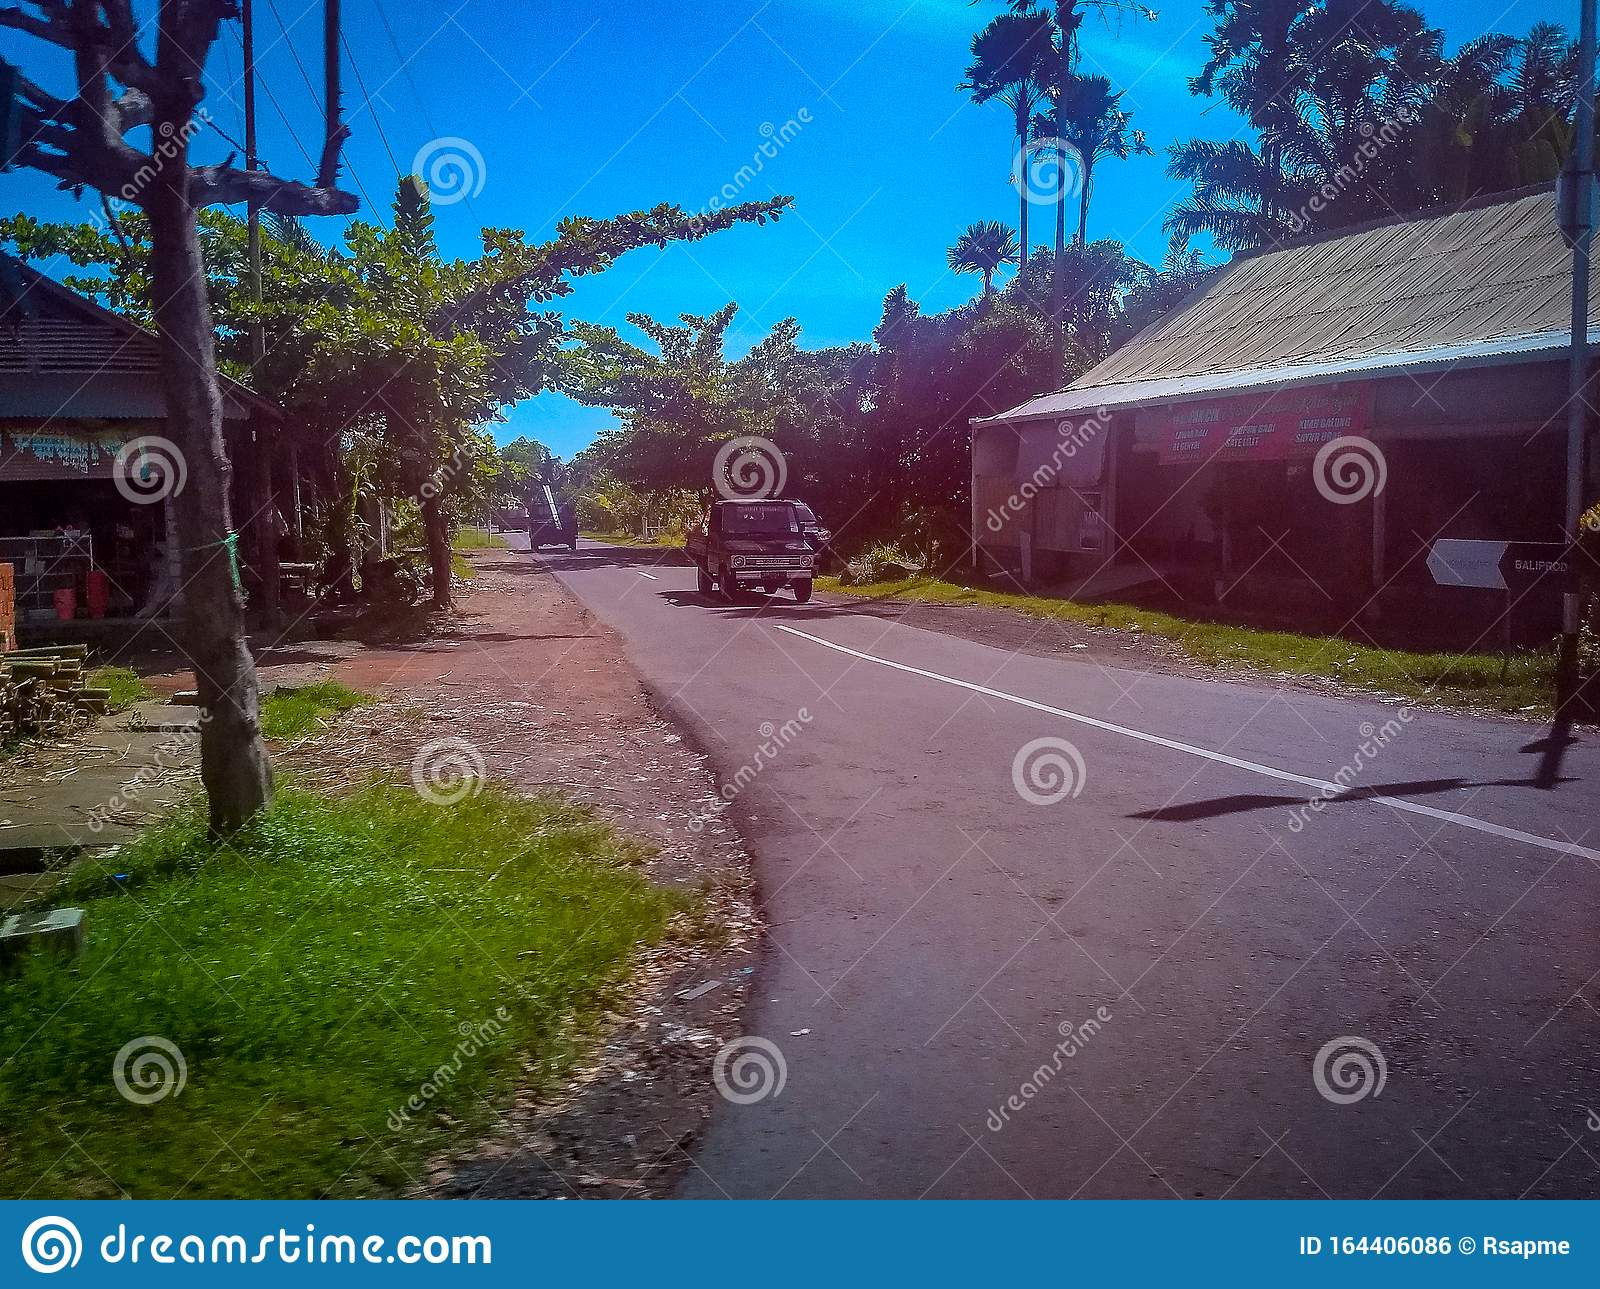 Road Side View In A Village At Bali Indonesia Bali Street View With Light Traffic Editorial Photo Image Of Street View 164406086